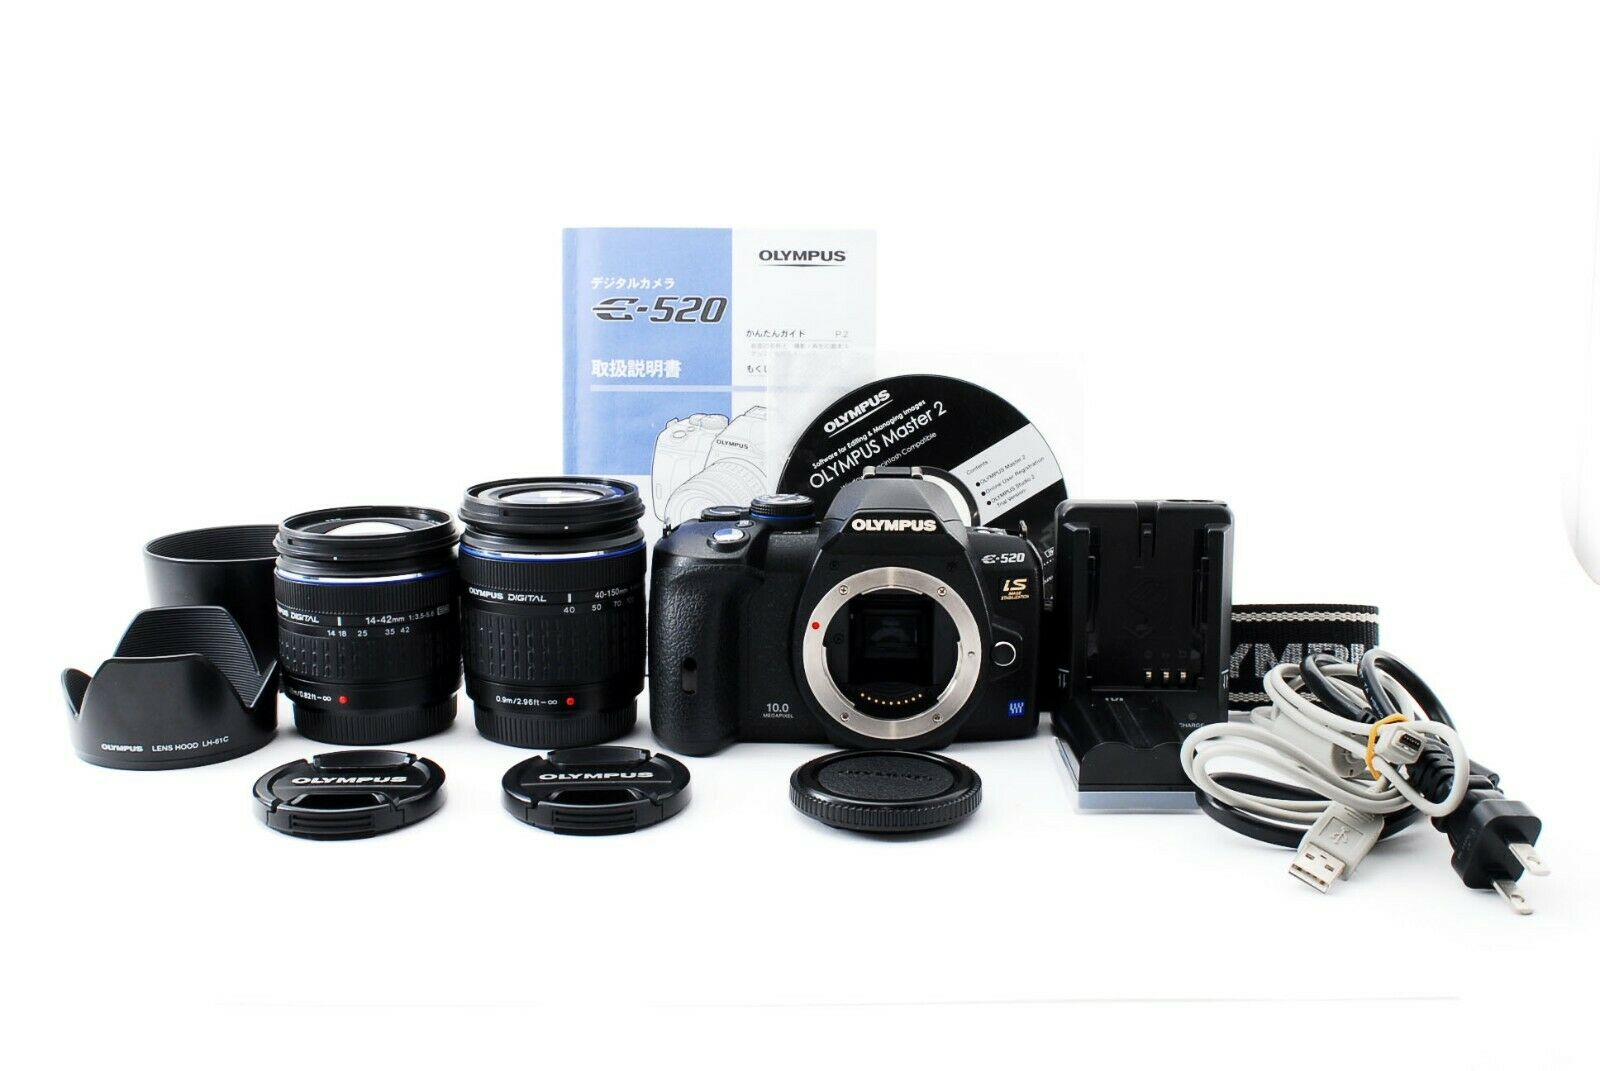 Olympus Lenses 14-42mm, 40-150mm, 70-300mm Pro Digital Hard Lens Hood For The Olympus E-600 Digital SLR Camera Which Have Any Of These